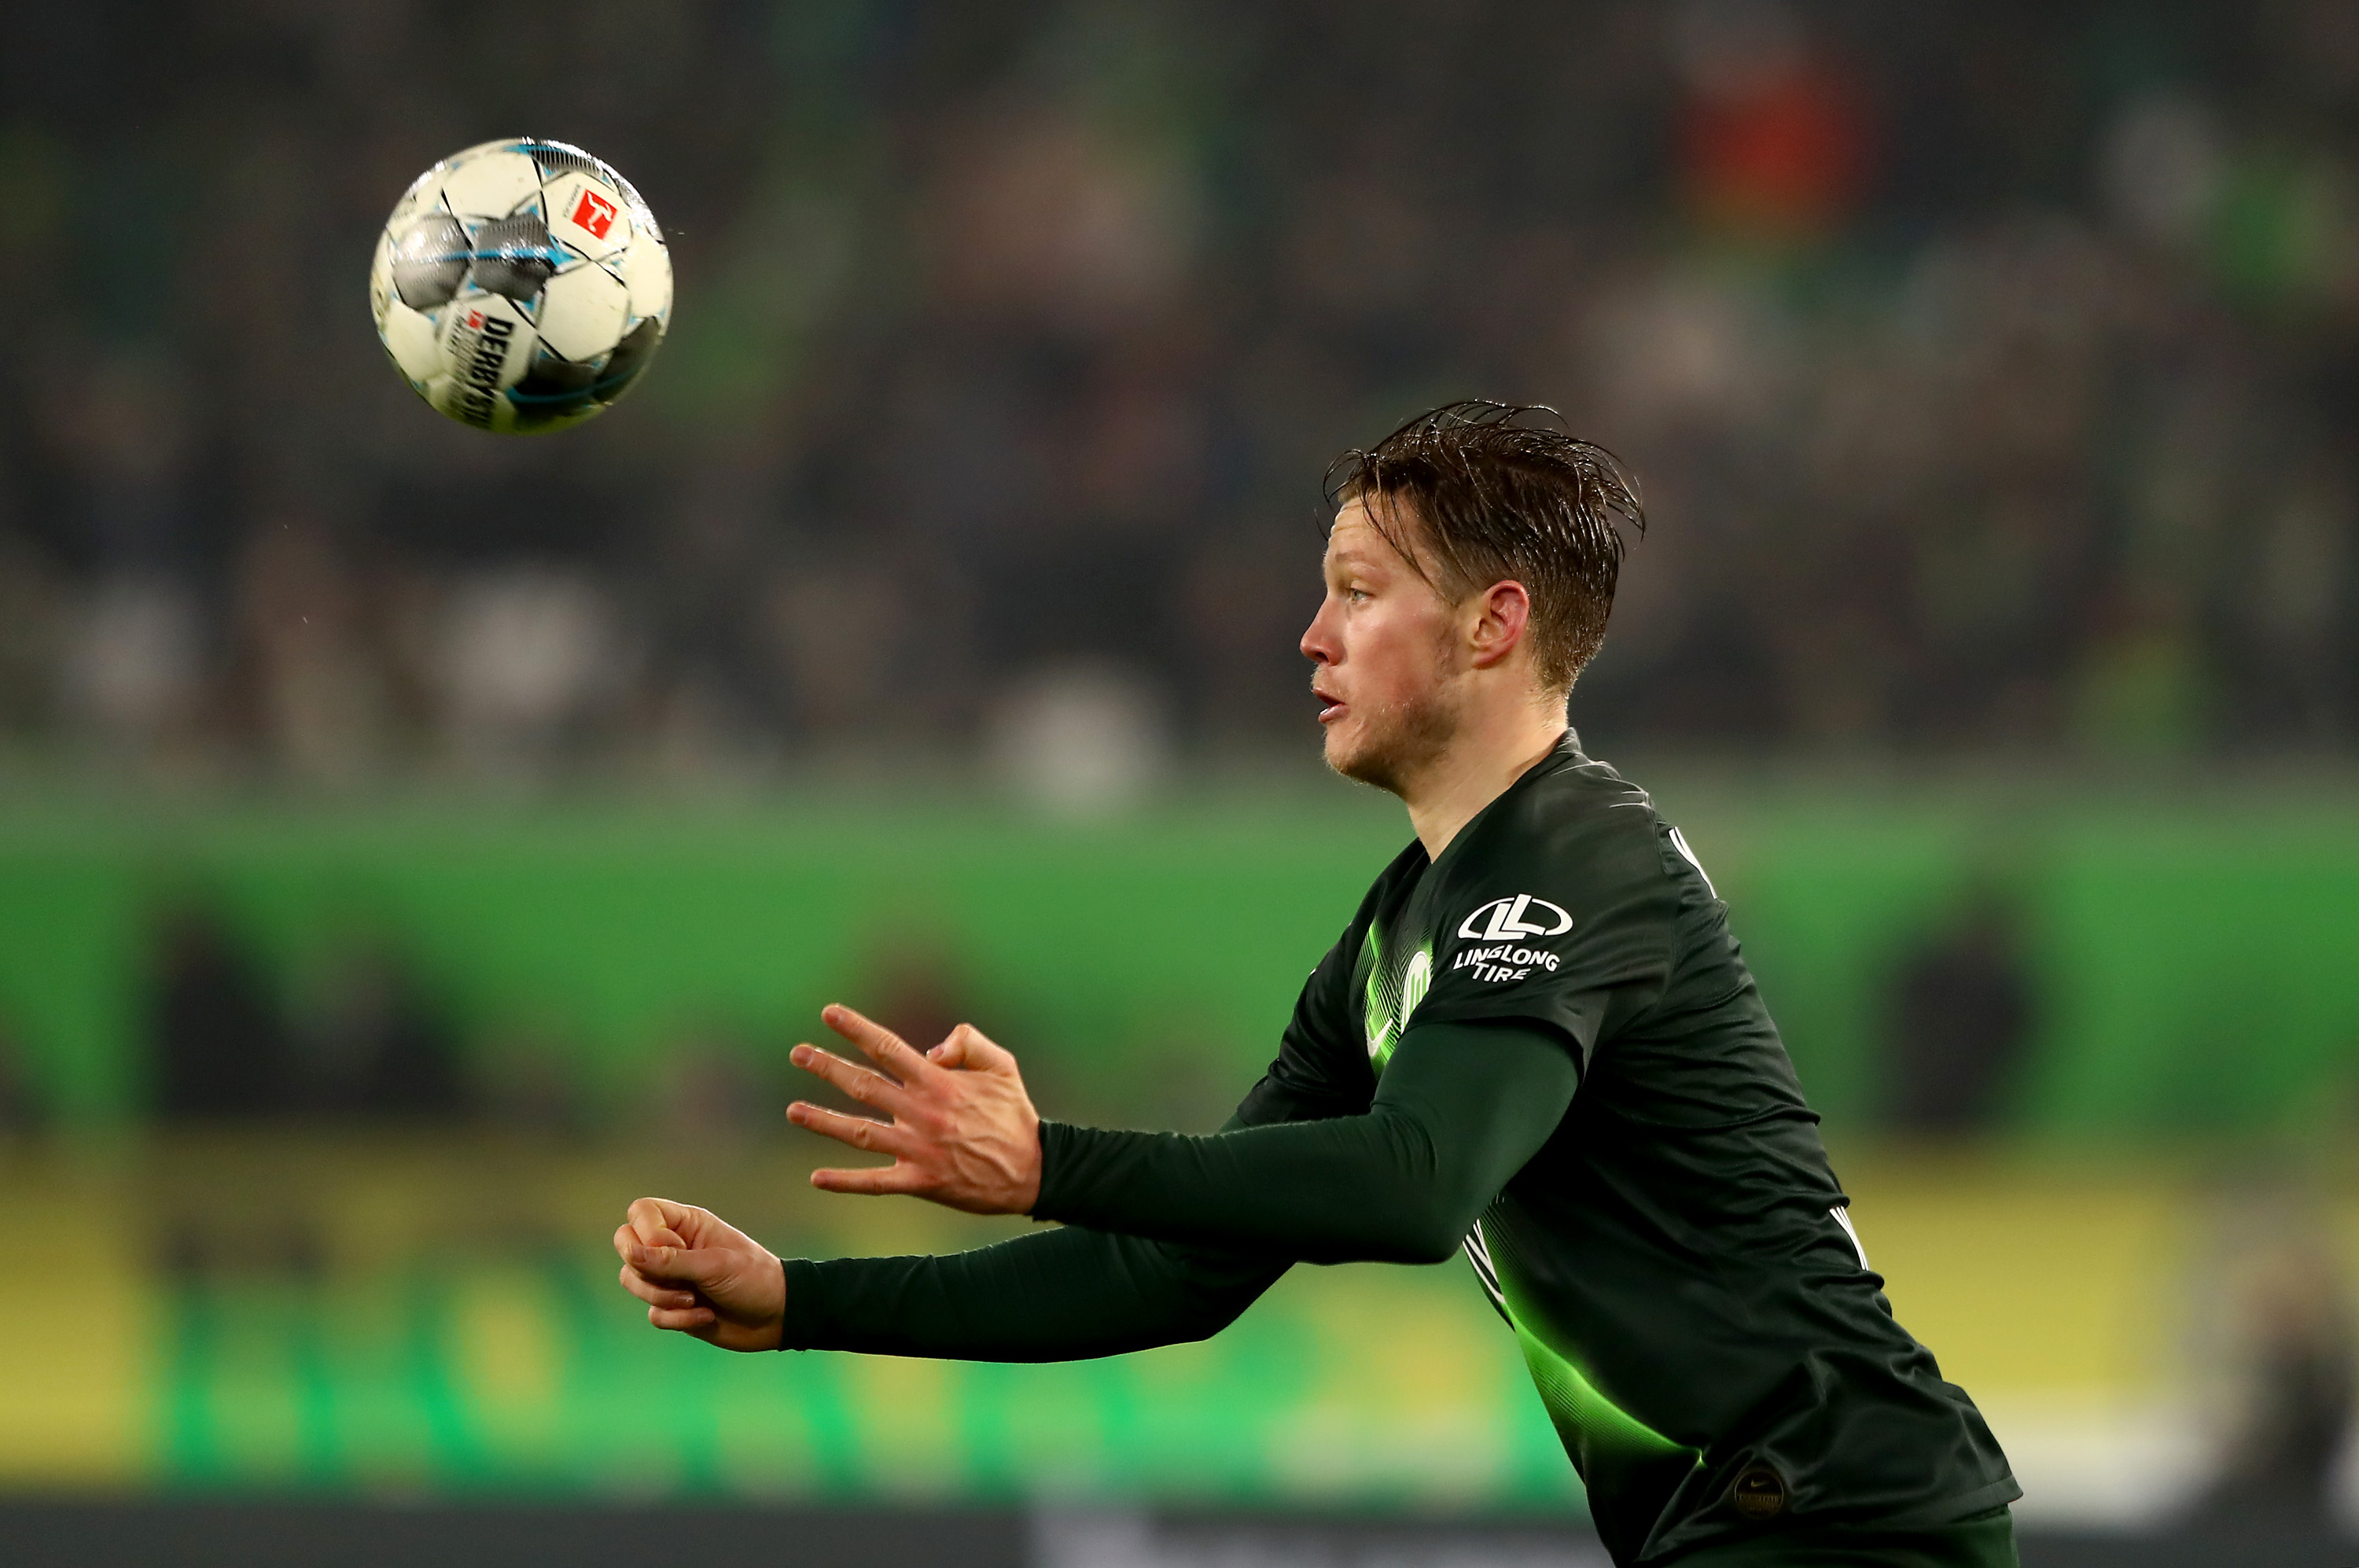 Wout Weghorst is back from suspension (Photo by Martin Rose/Bongarts/Getty Images)